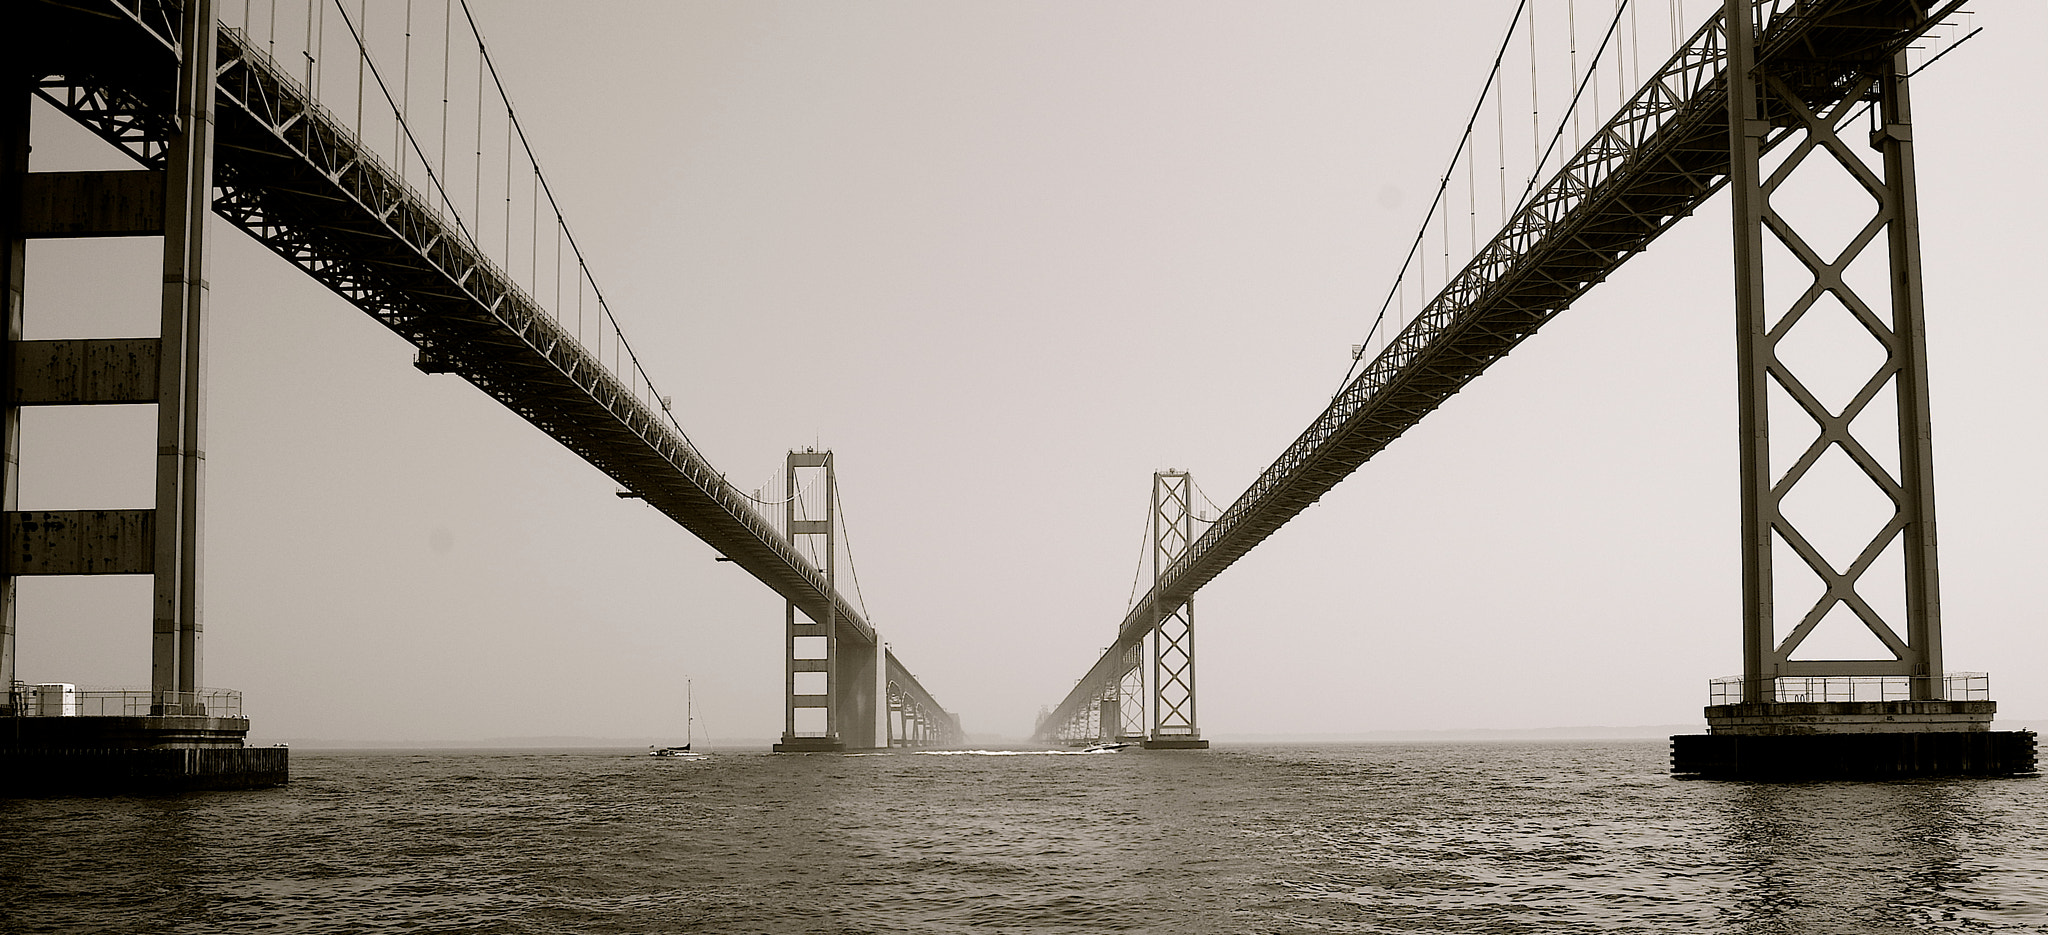 Photograph Chesapeake Bay Bridge by Brendan Lilly on 500px